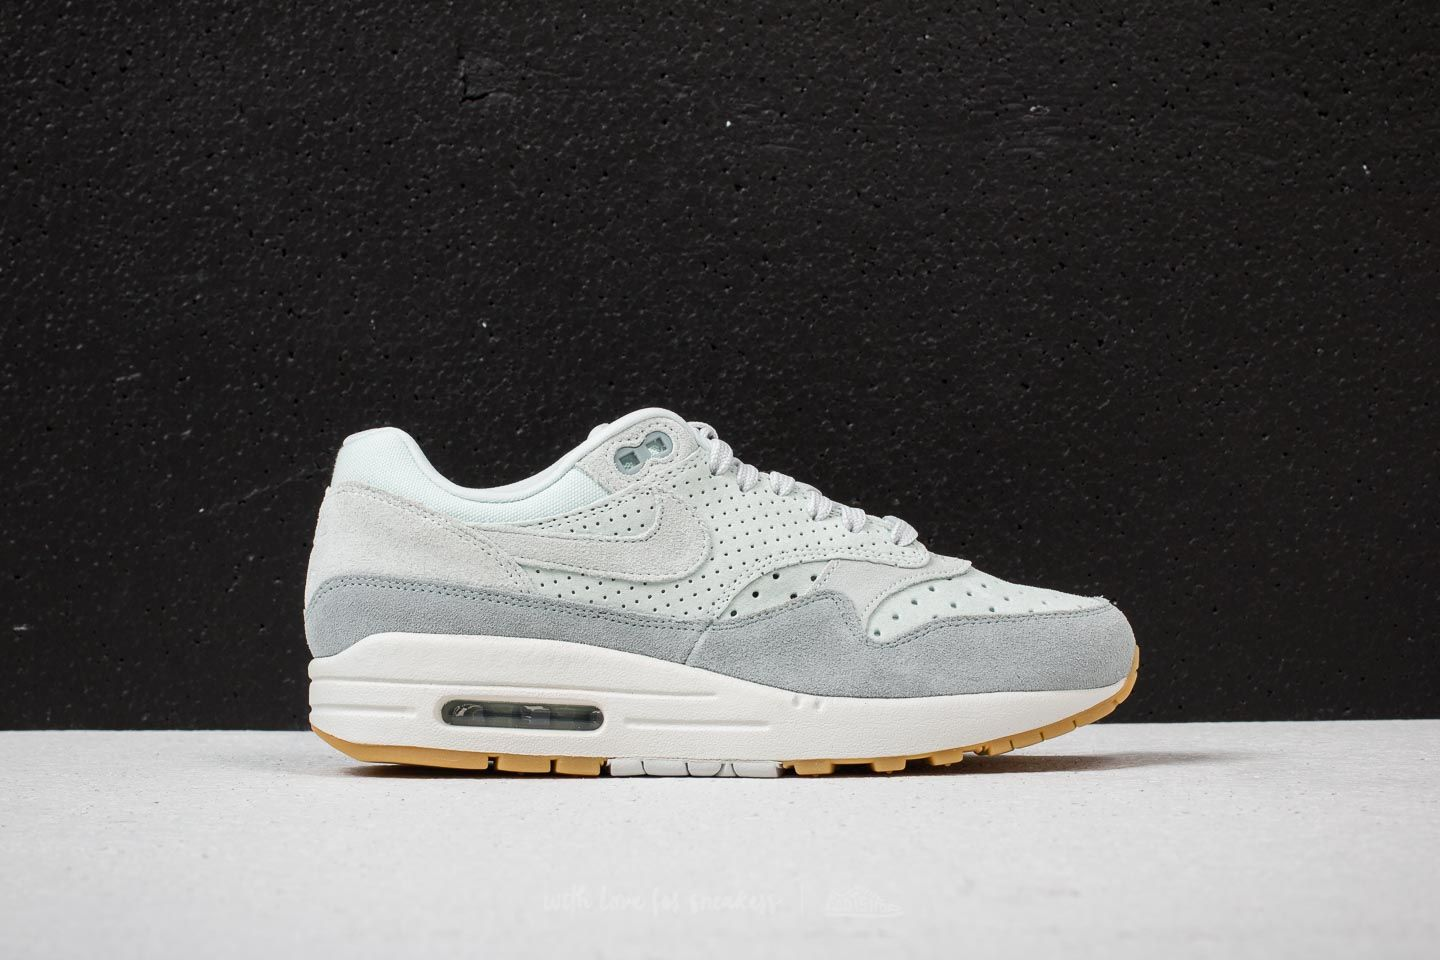 brand new 93e67 5e4aa Nike Wmns Air Max 1 Premium Barely Grey  Barely Grey at a great price 139